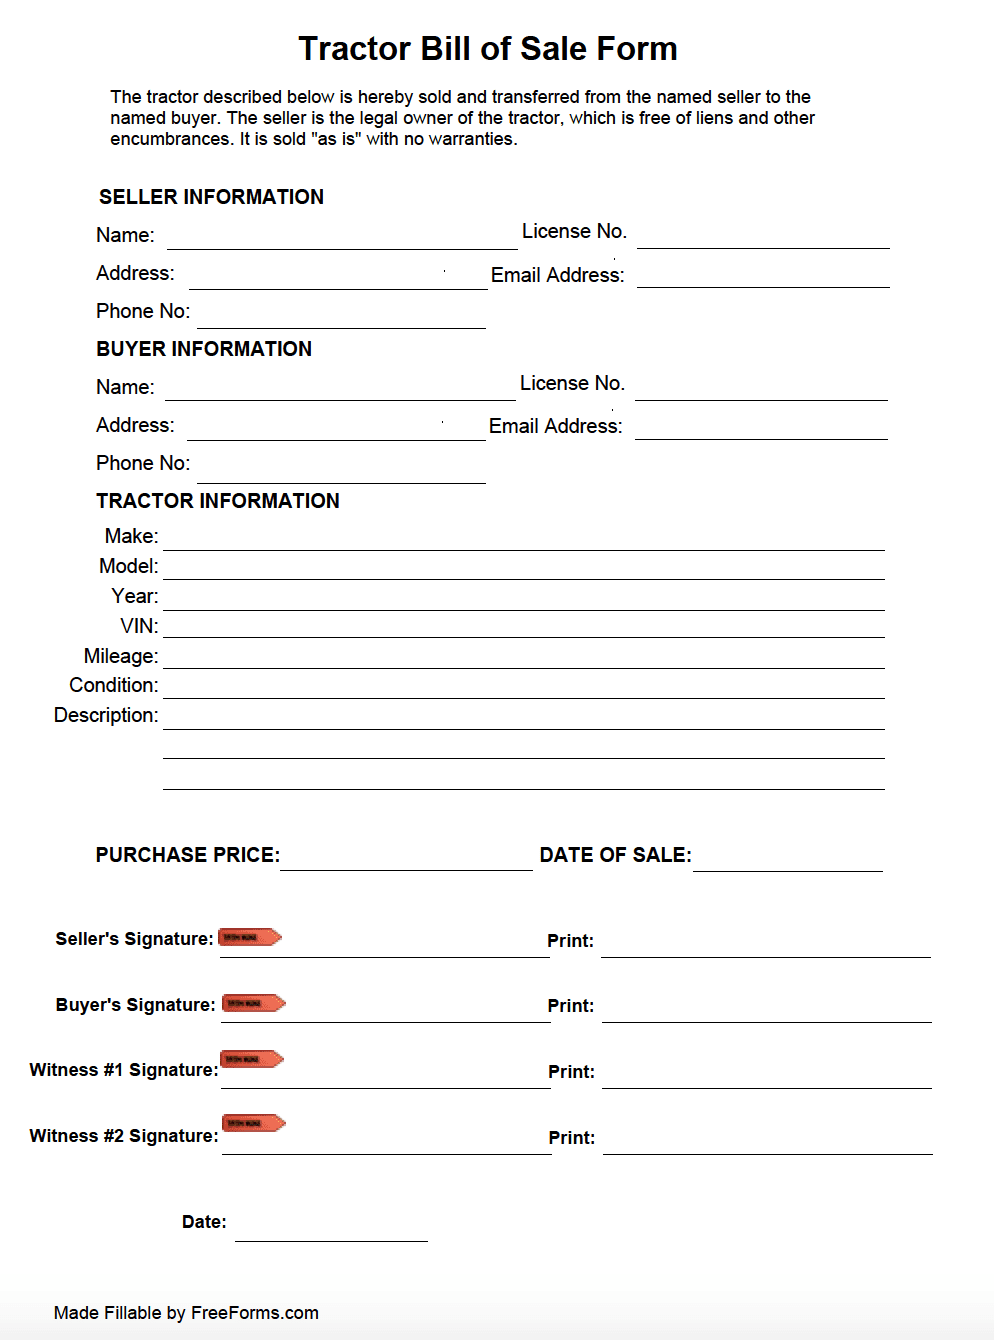 Free Tractor Bill of Sale Form | PDF